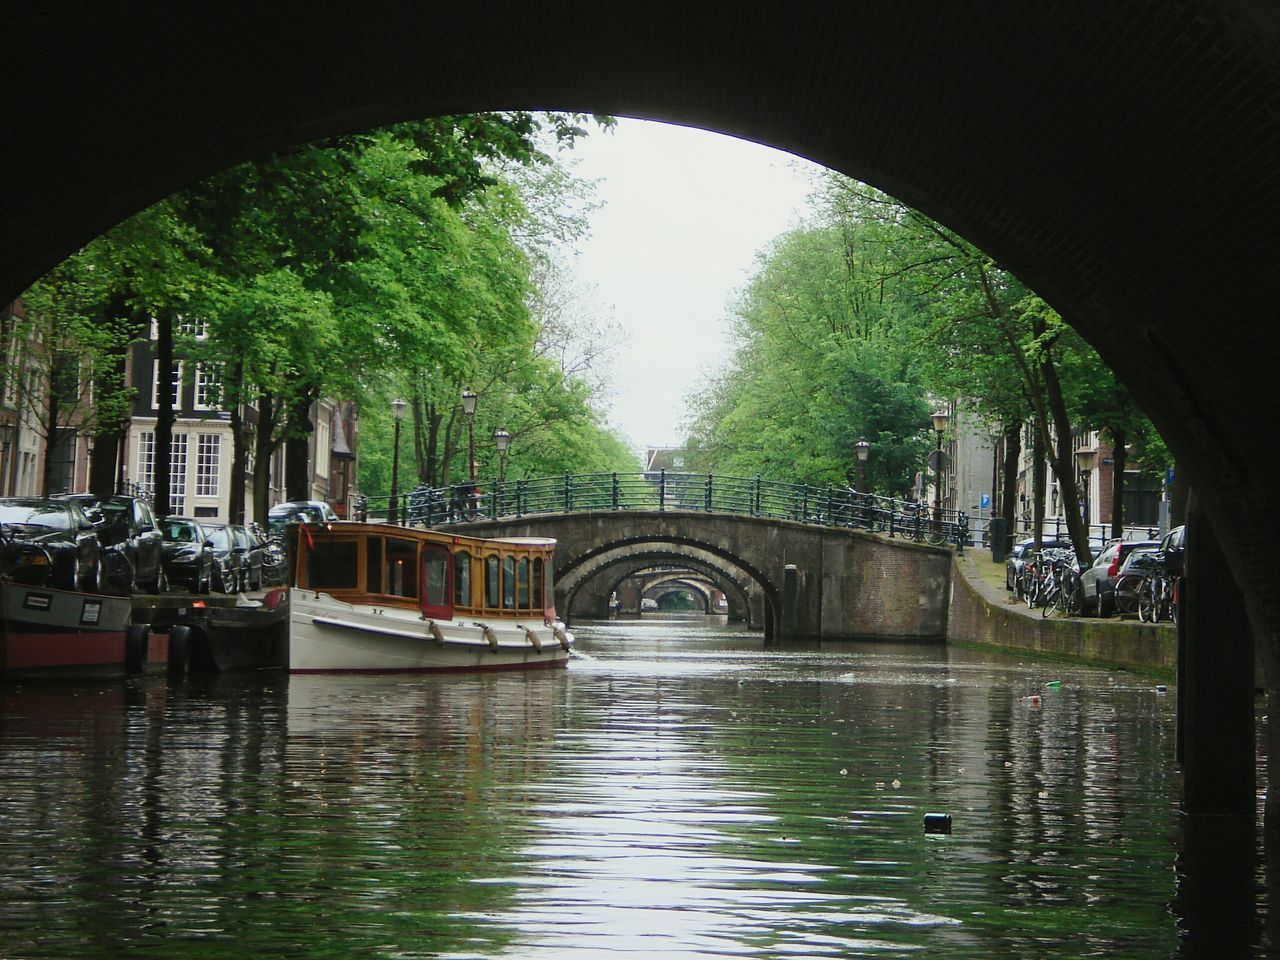 Your Amsterdam Green Water Reflections Amesterdao Green Tree Nature The KIOMI Collection Showcase April Taking Photos Netherlands Holland City Amsterdam City Life Boats River Stone Bridge Bridges Channels